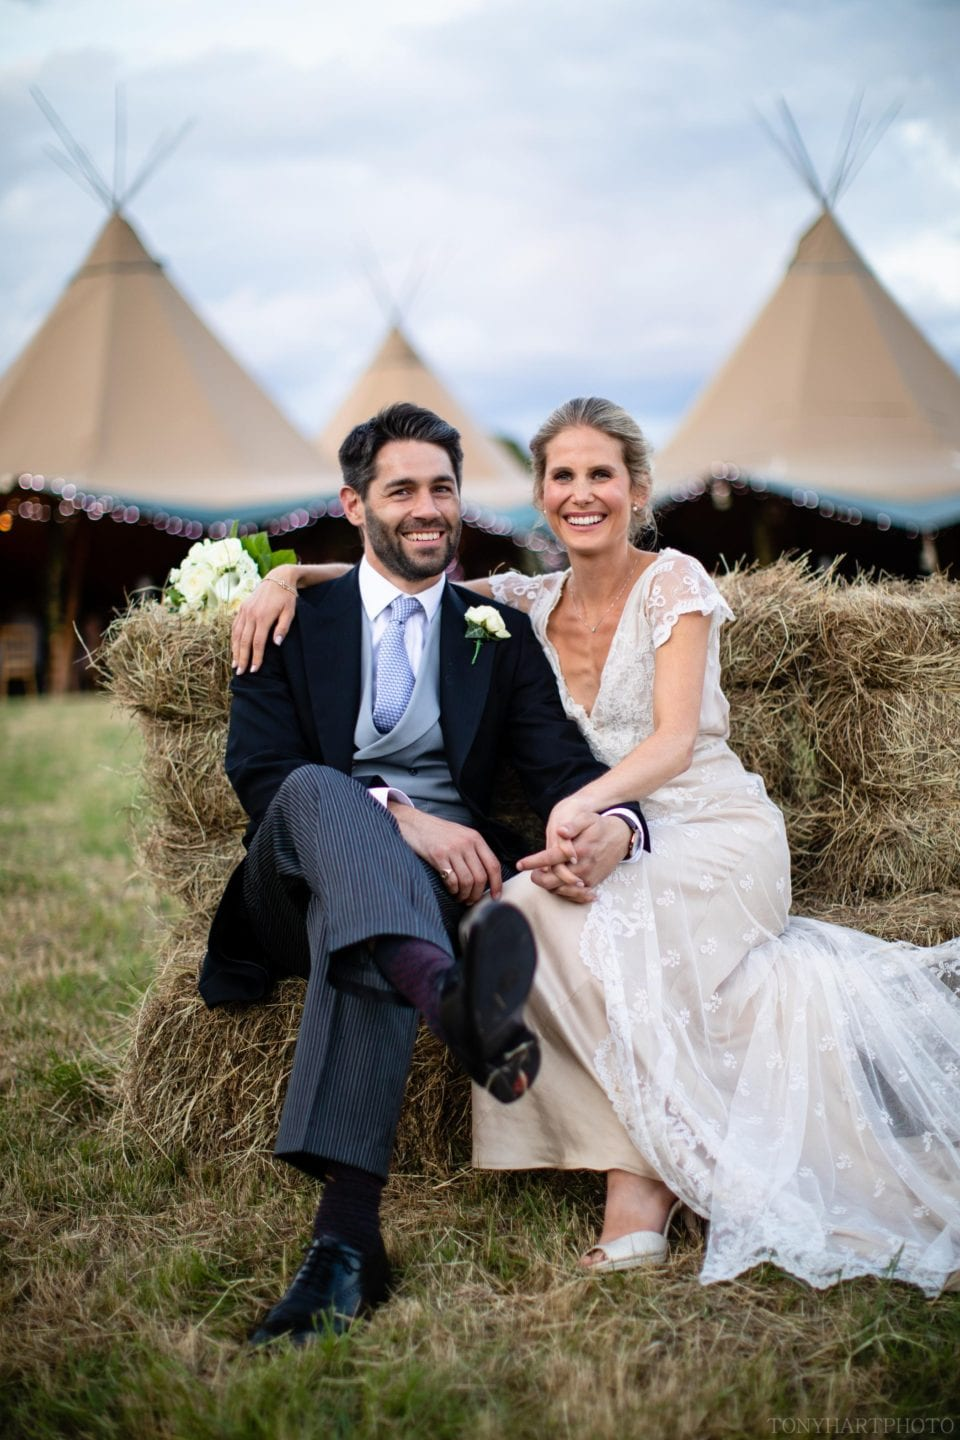 Grace & Jumbo pictured outside their tipi wedding in West Sussex